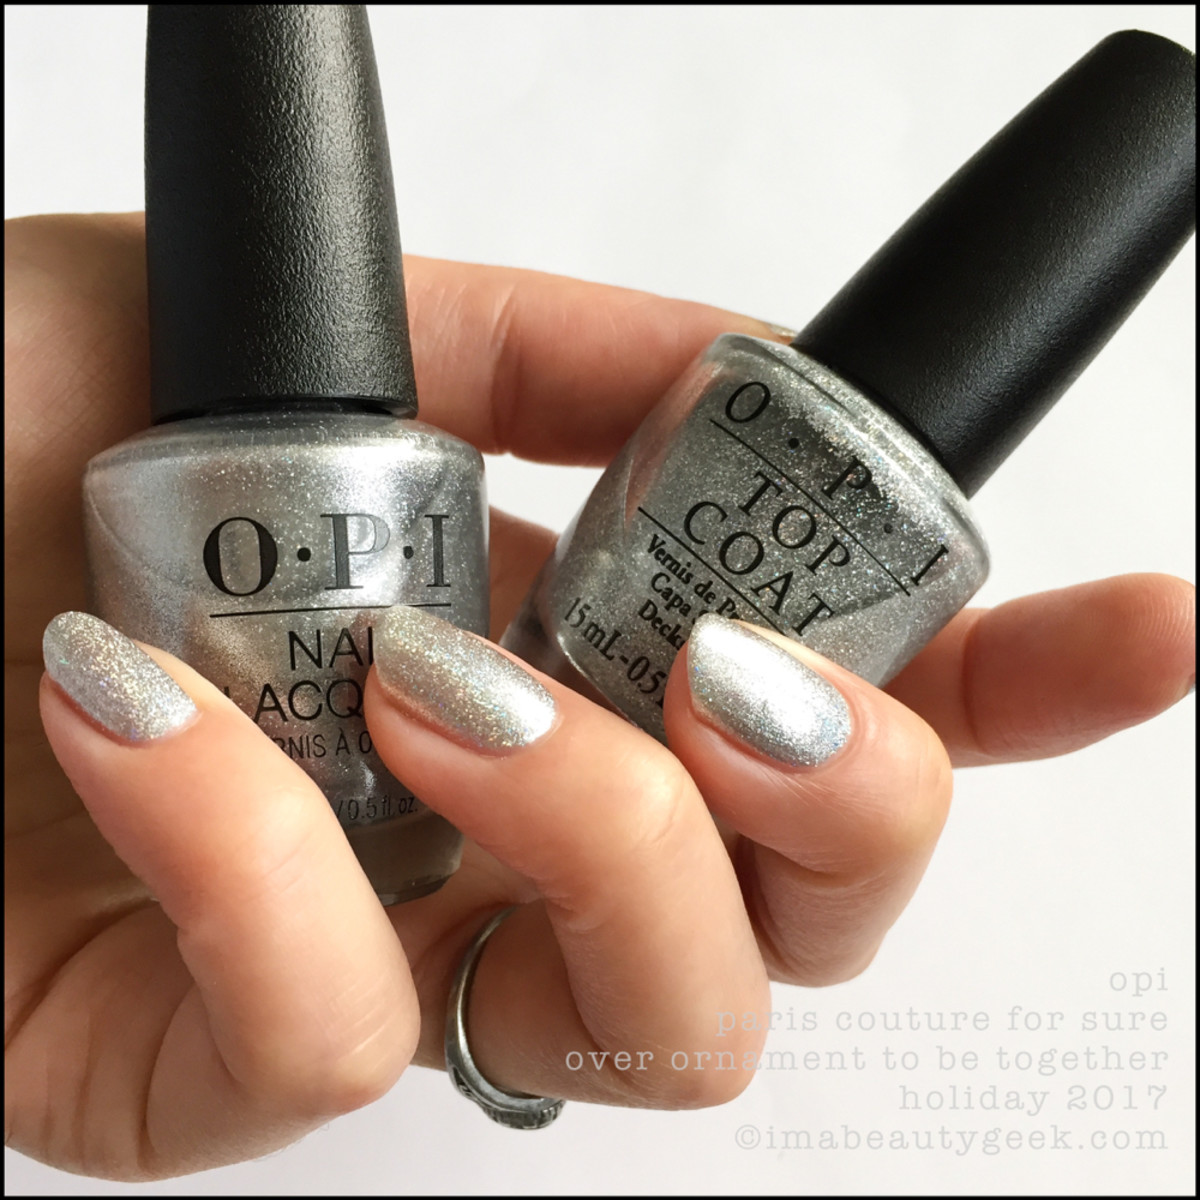 OPI Paris Couture For Sure over Ornament to be Together - Love OPI XOXO Holiday 2017 Collection